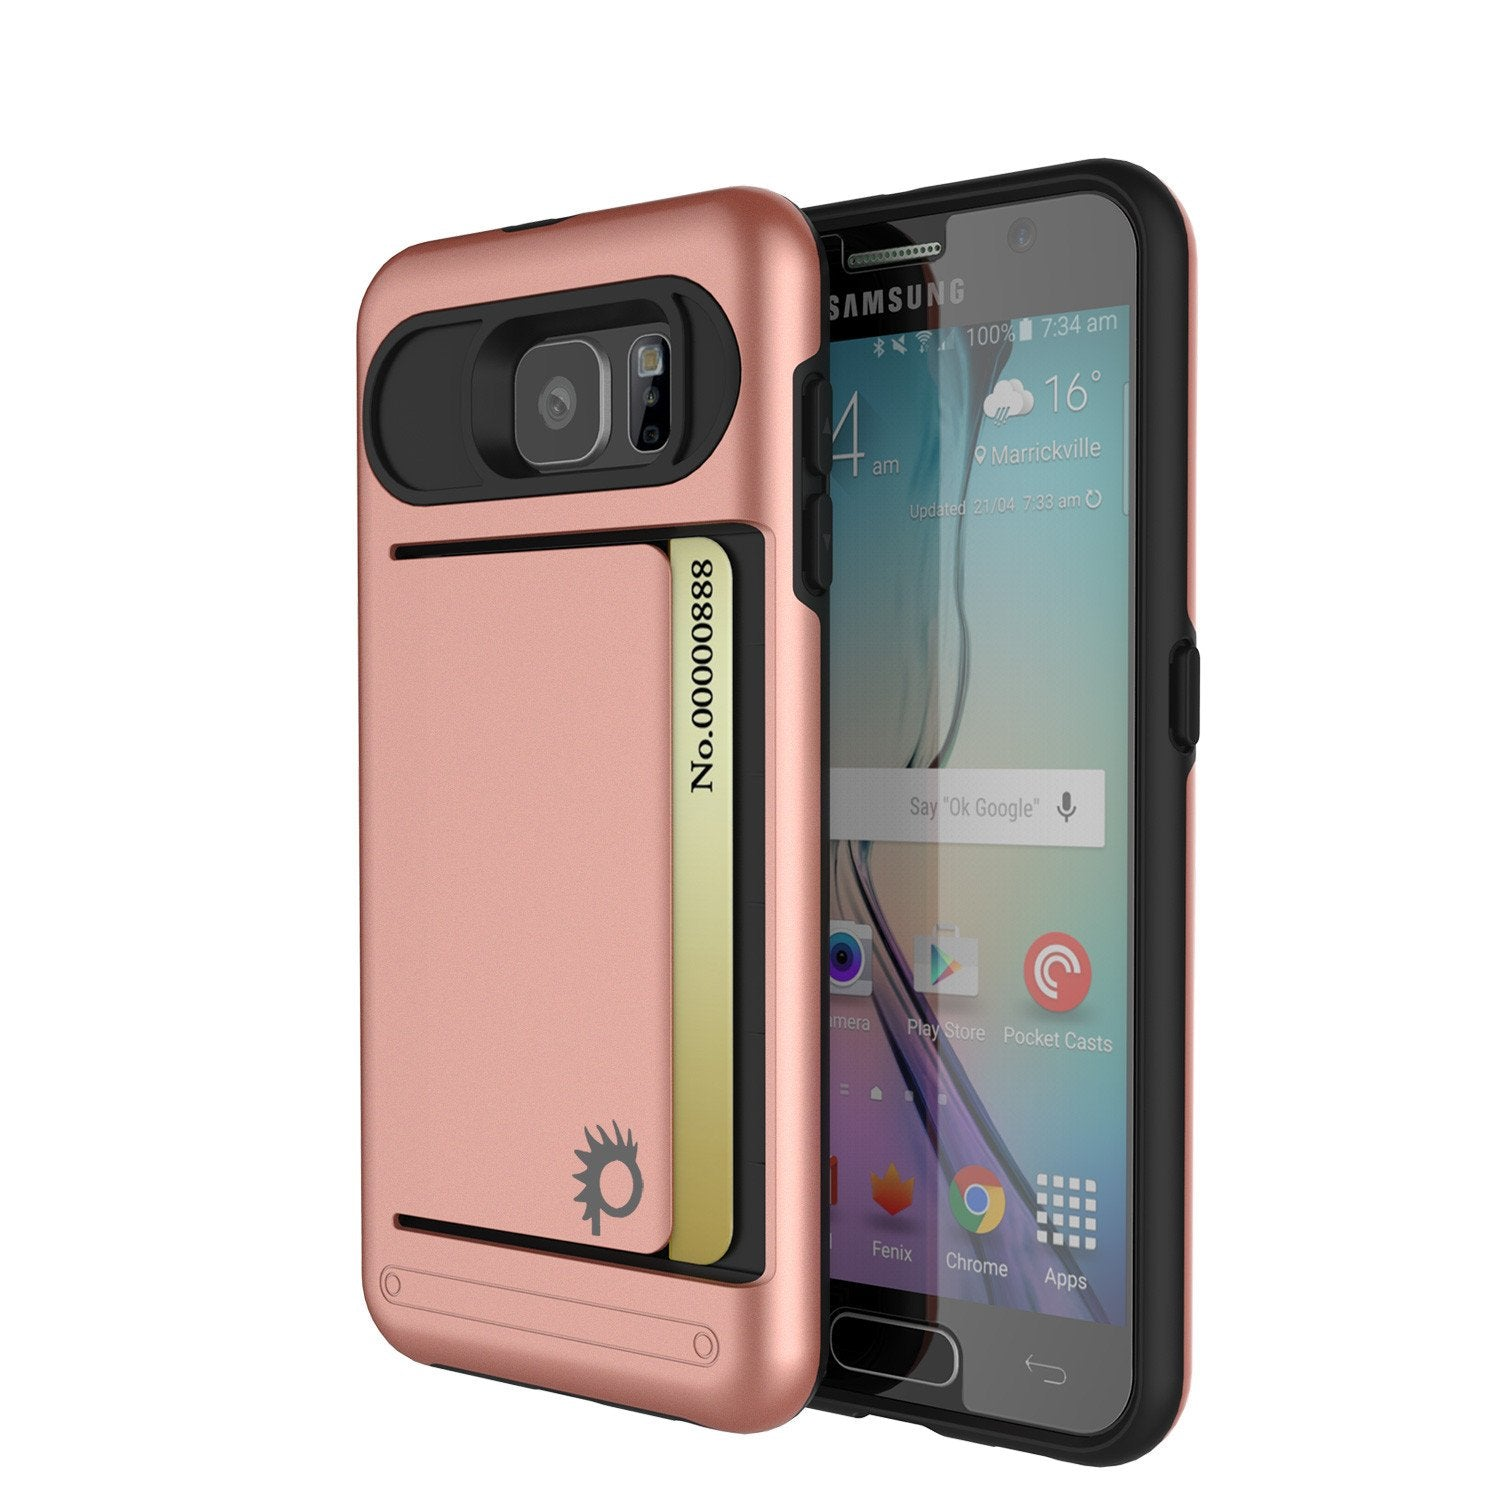 Galaxy s6 Case PunkCase CLUTCH Rose Gold Series Slim Armor Soft Cover Case w/ Tempered Glass - PunkCase NZ